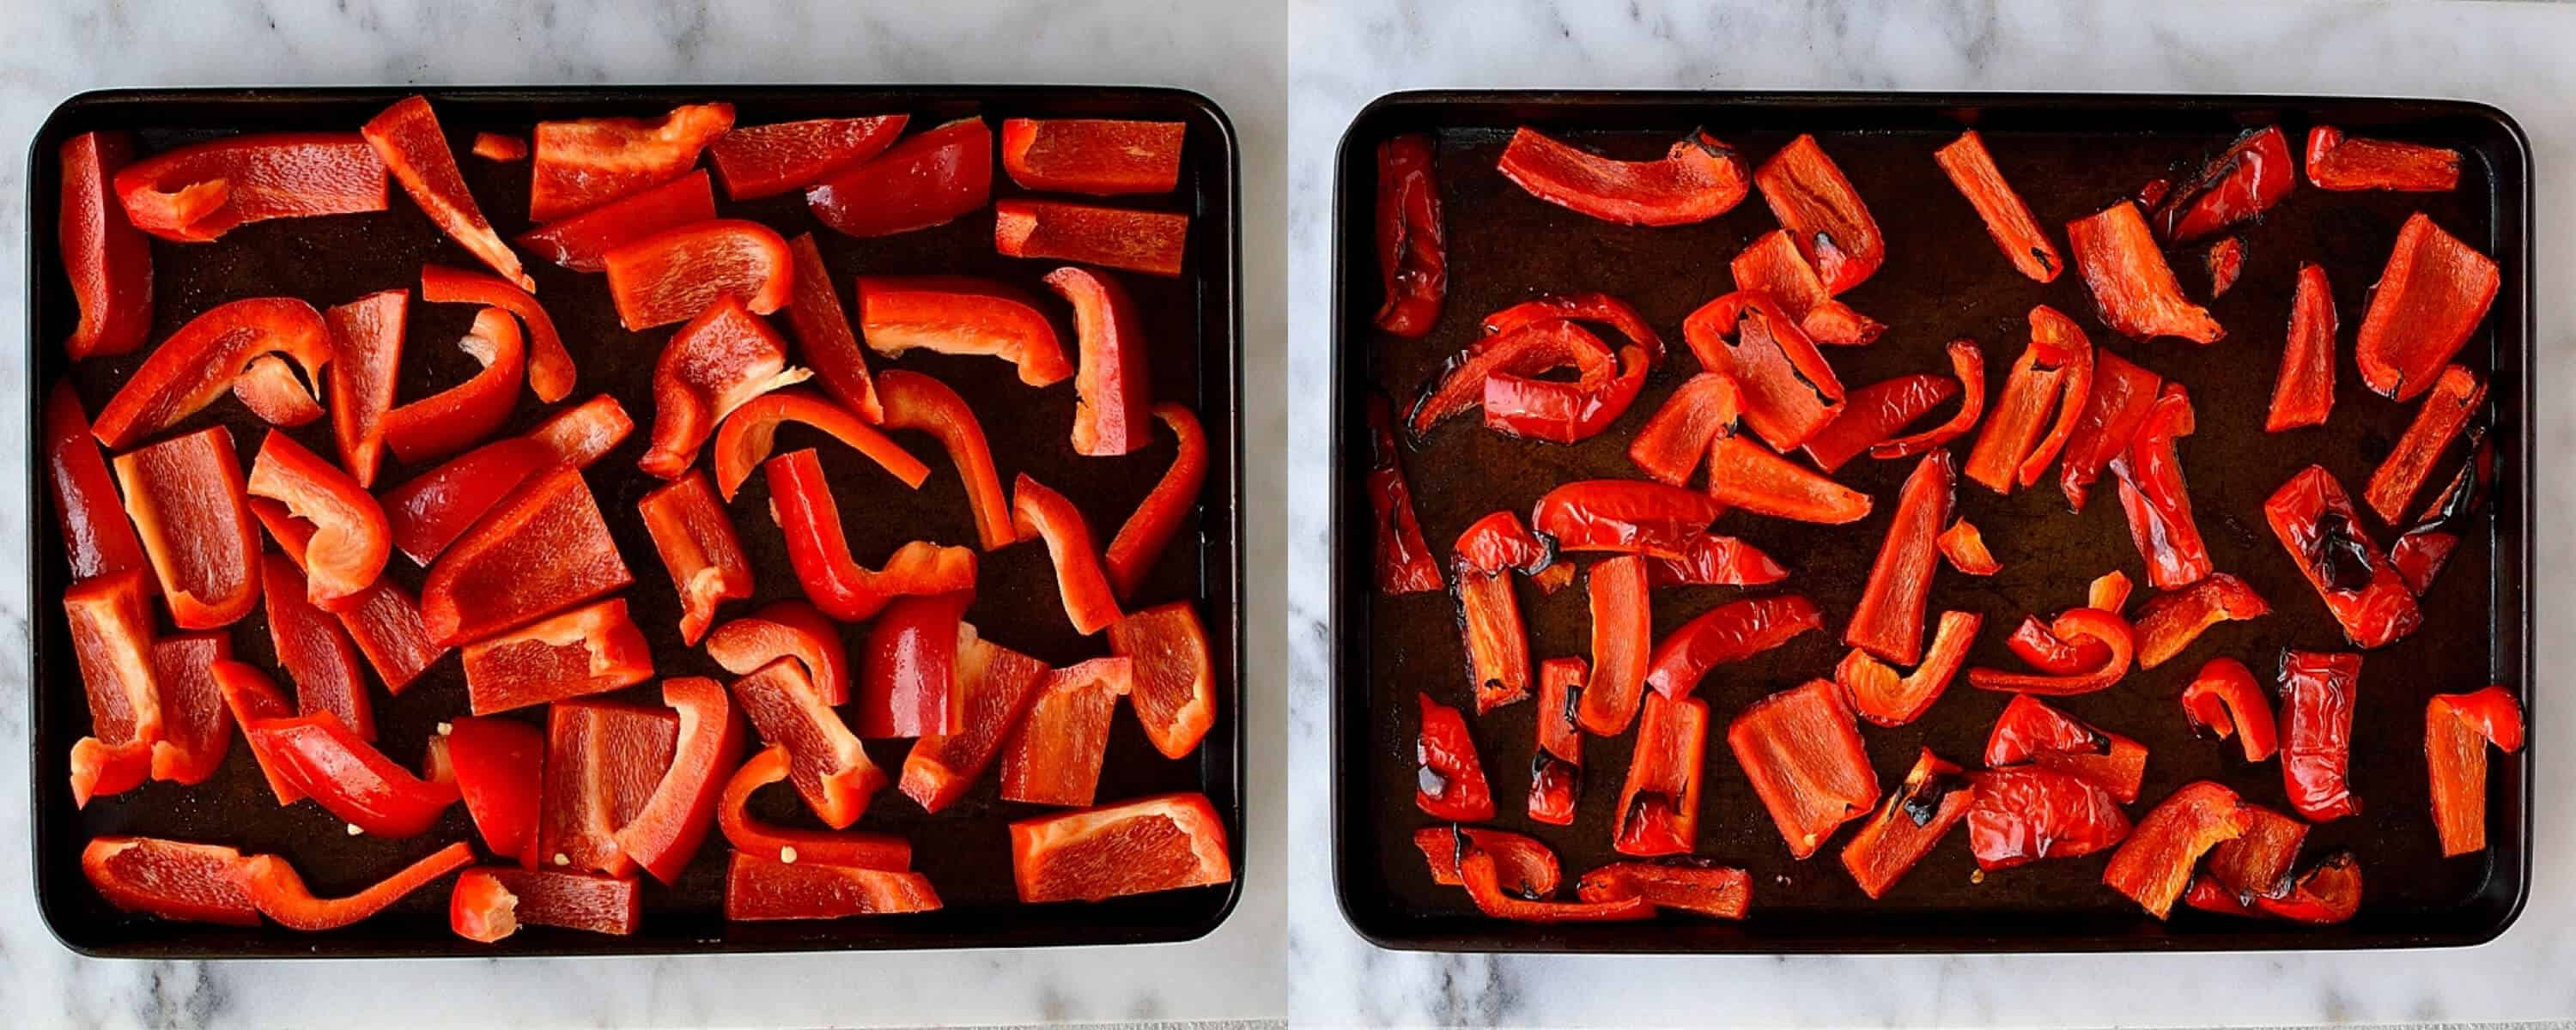 roasted red pepper and chilli hummus step 1